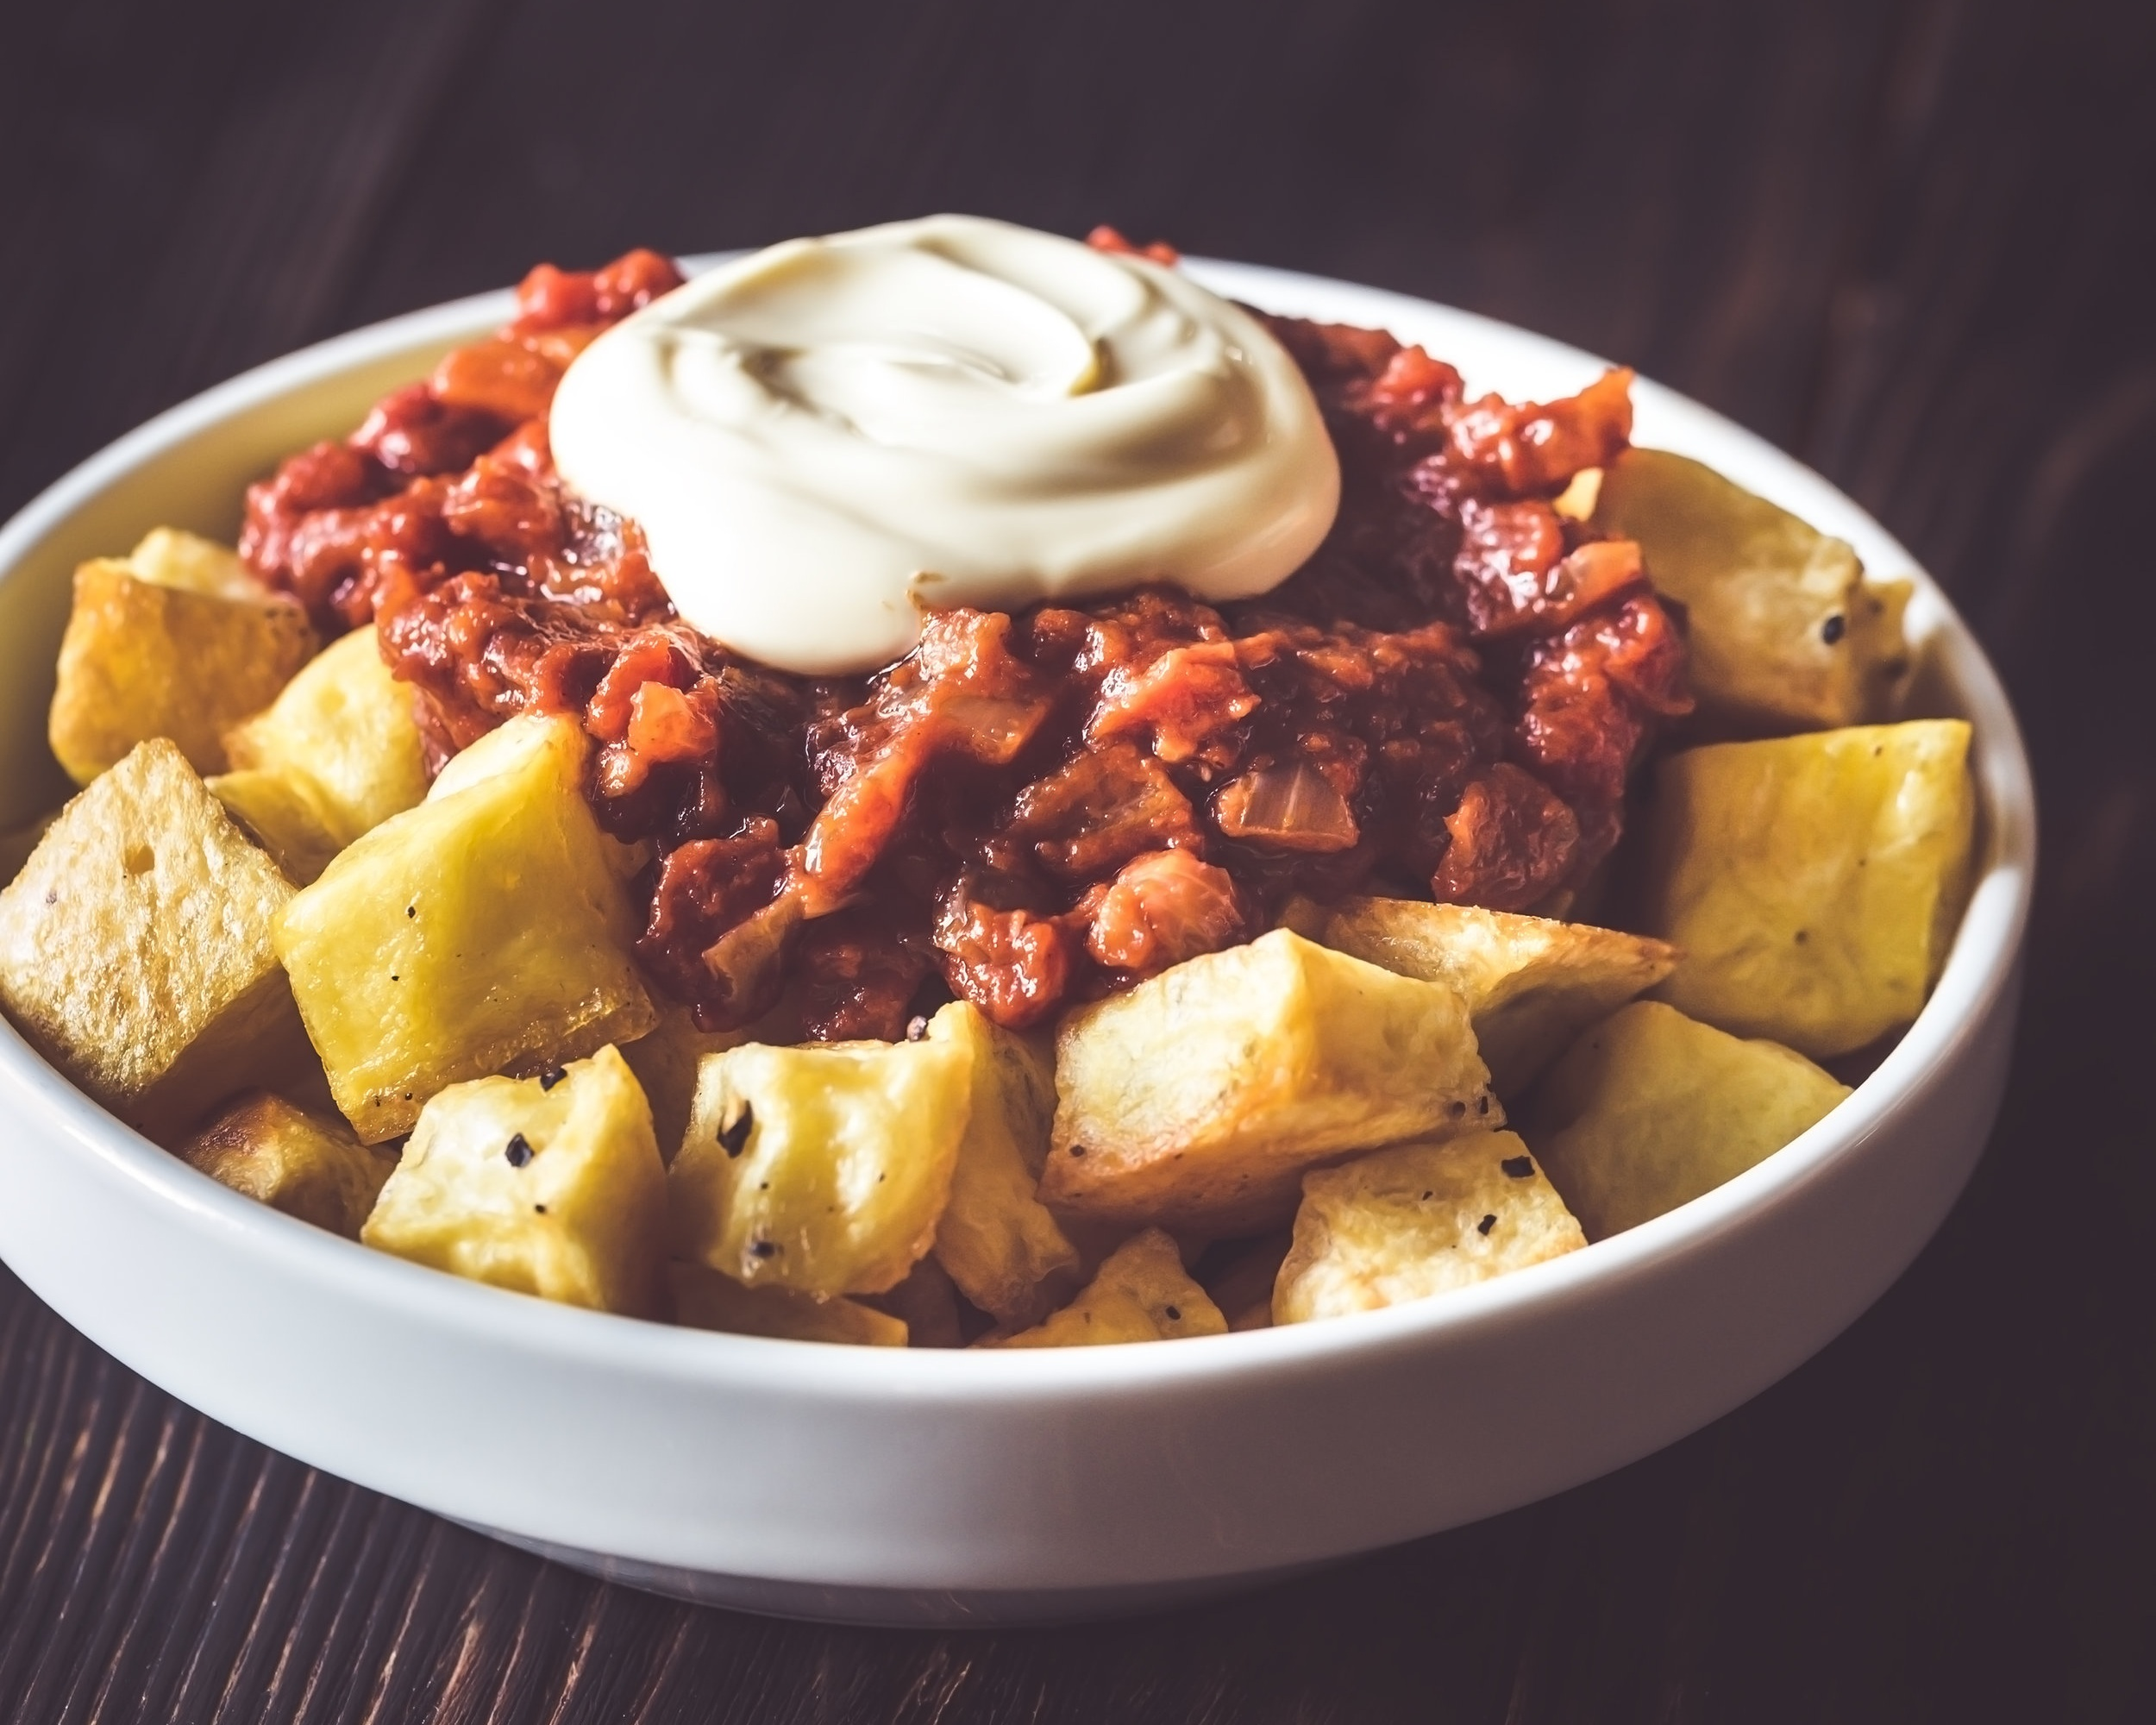 Patatas Bravas - Keep things simple with cube-cut potatoes, fried in oil and served warm with a sauce such as a spicy tomato sauce or melted cheese.